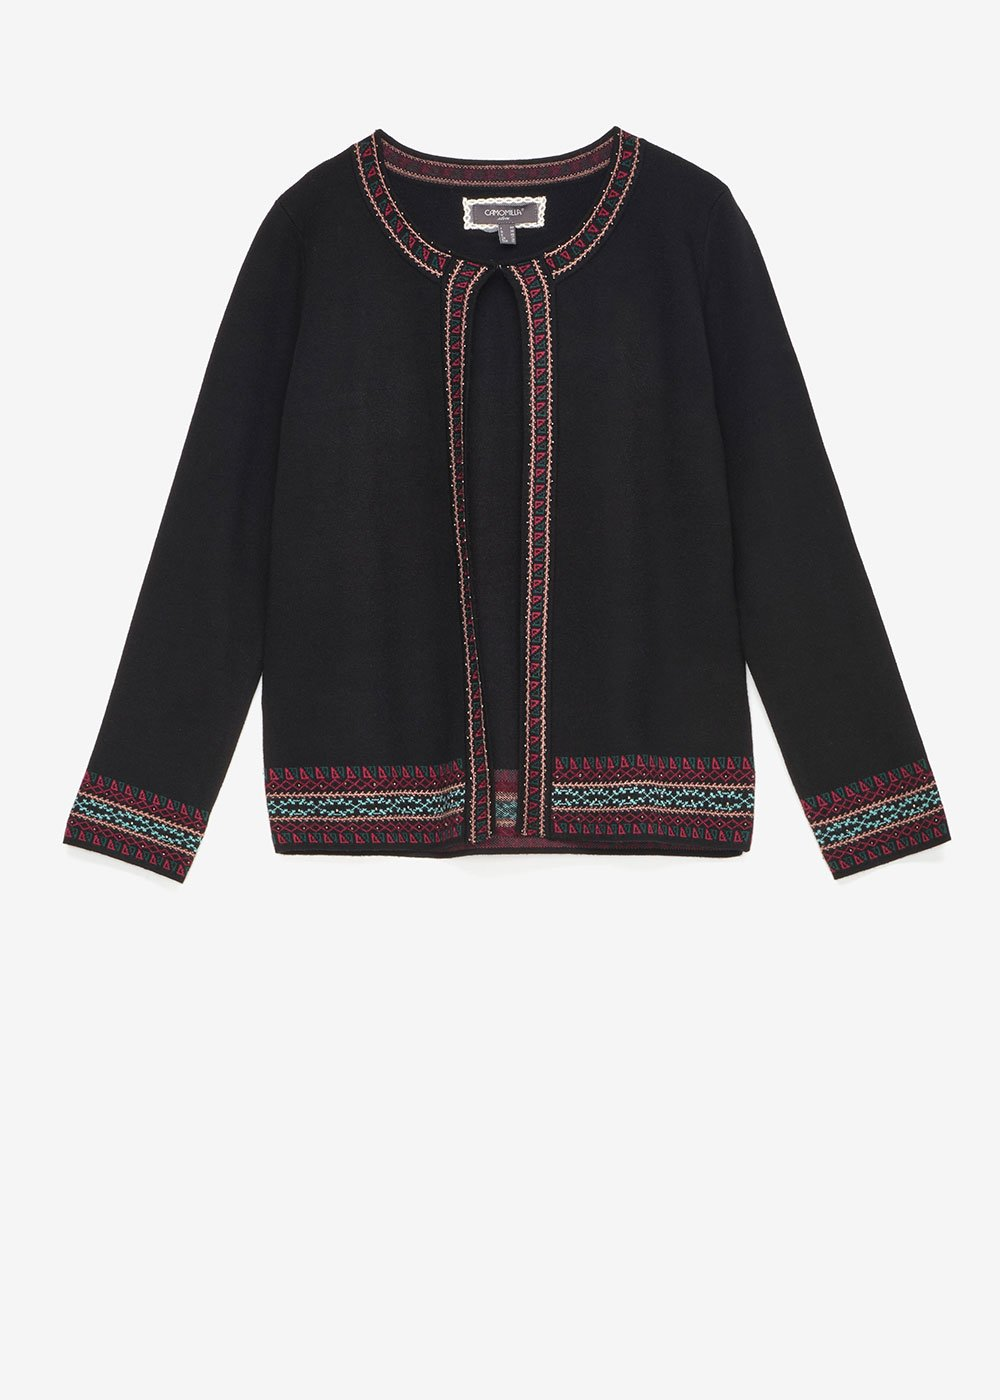 Clark shrug with jacquard embroidery - Black - Woman